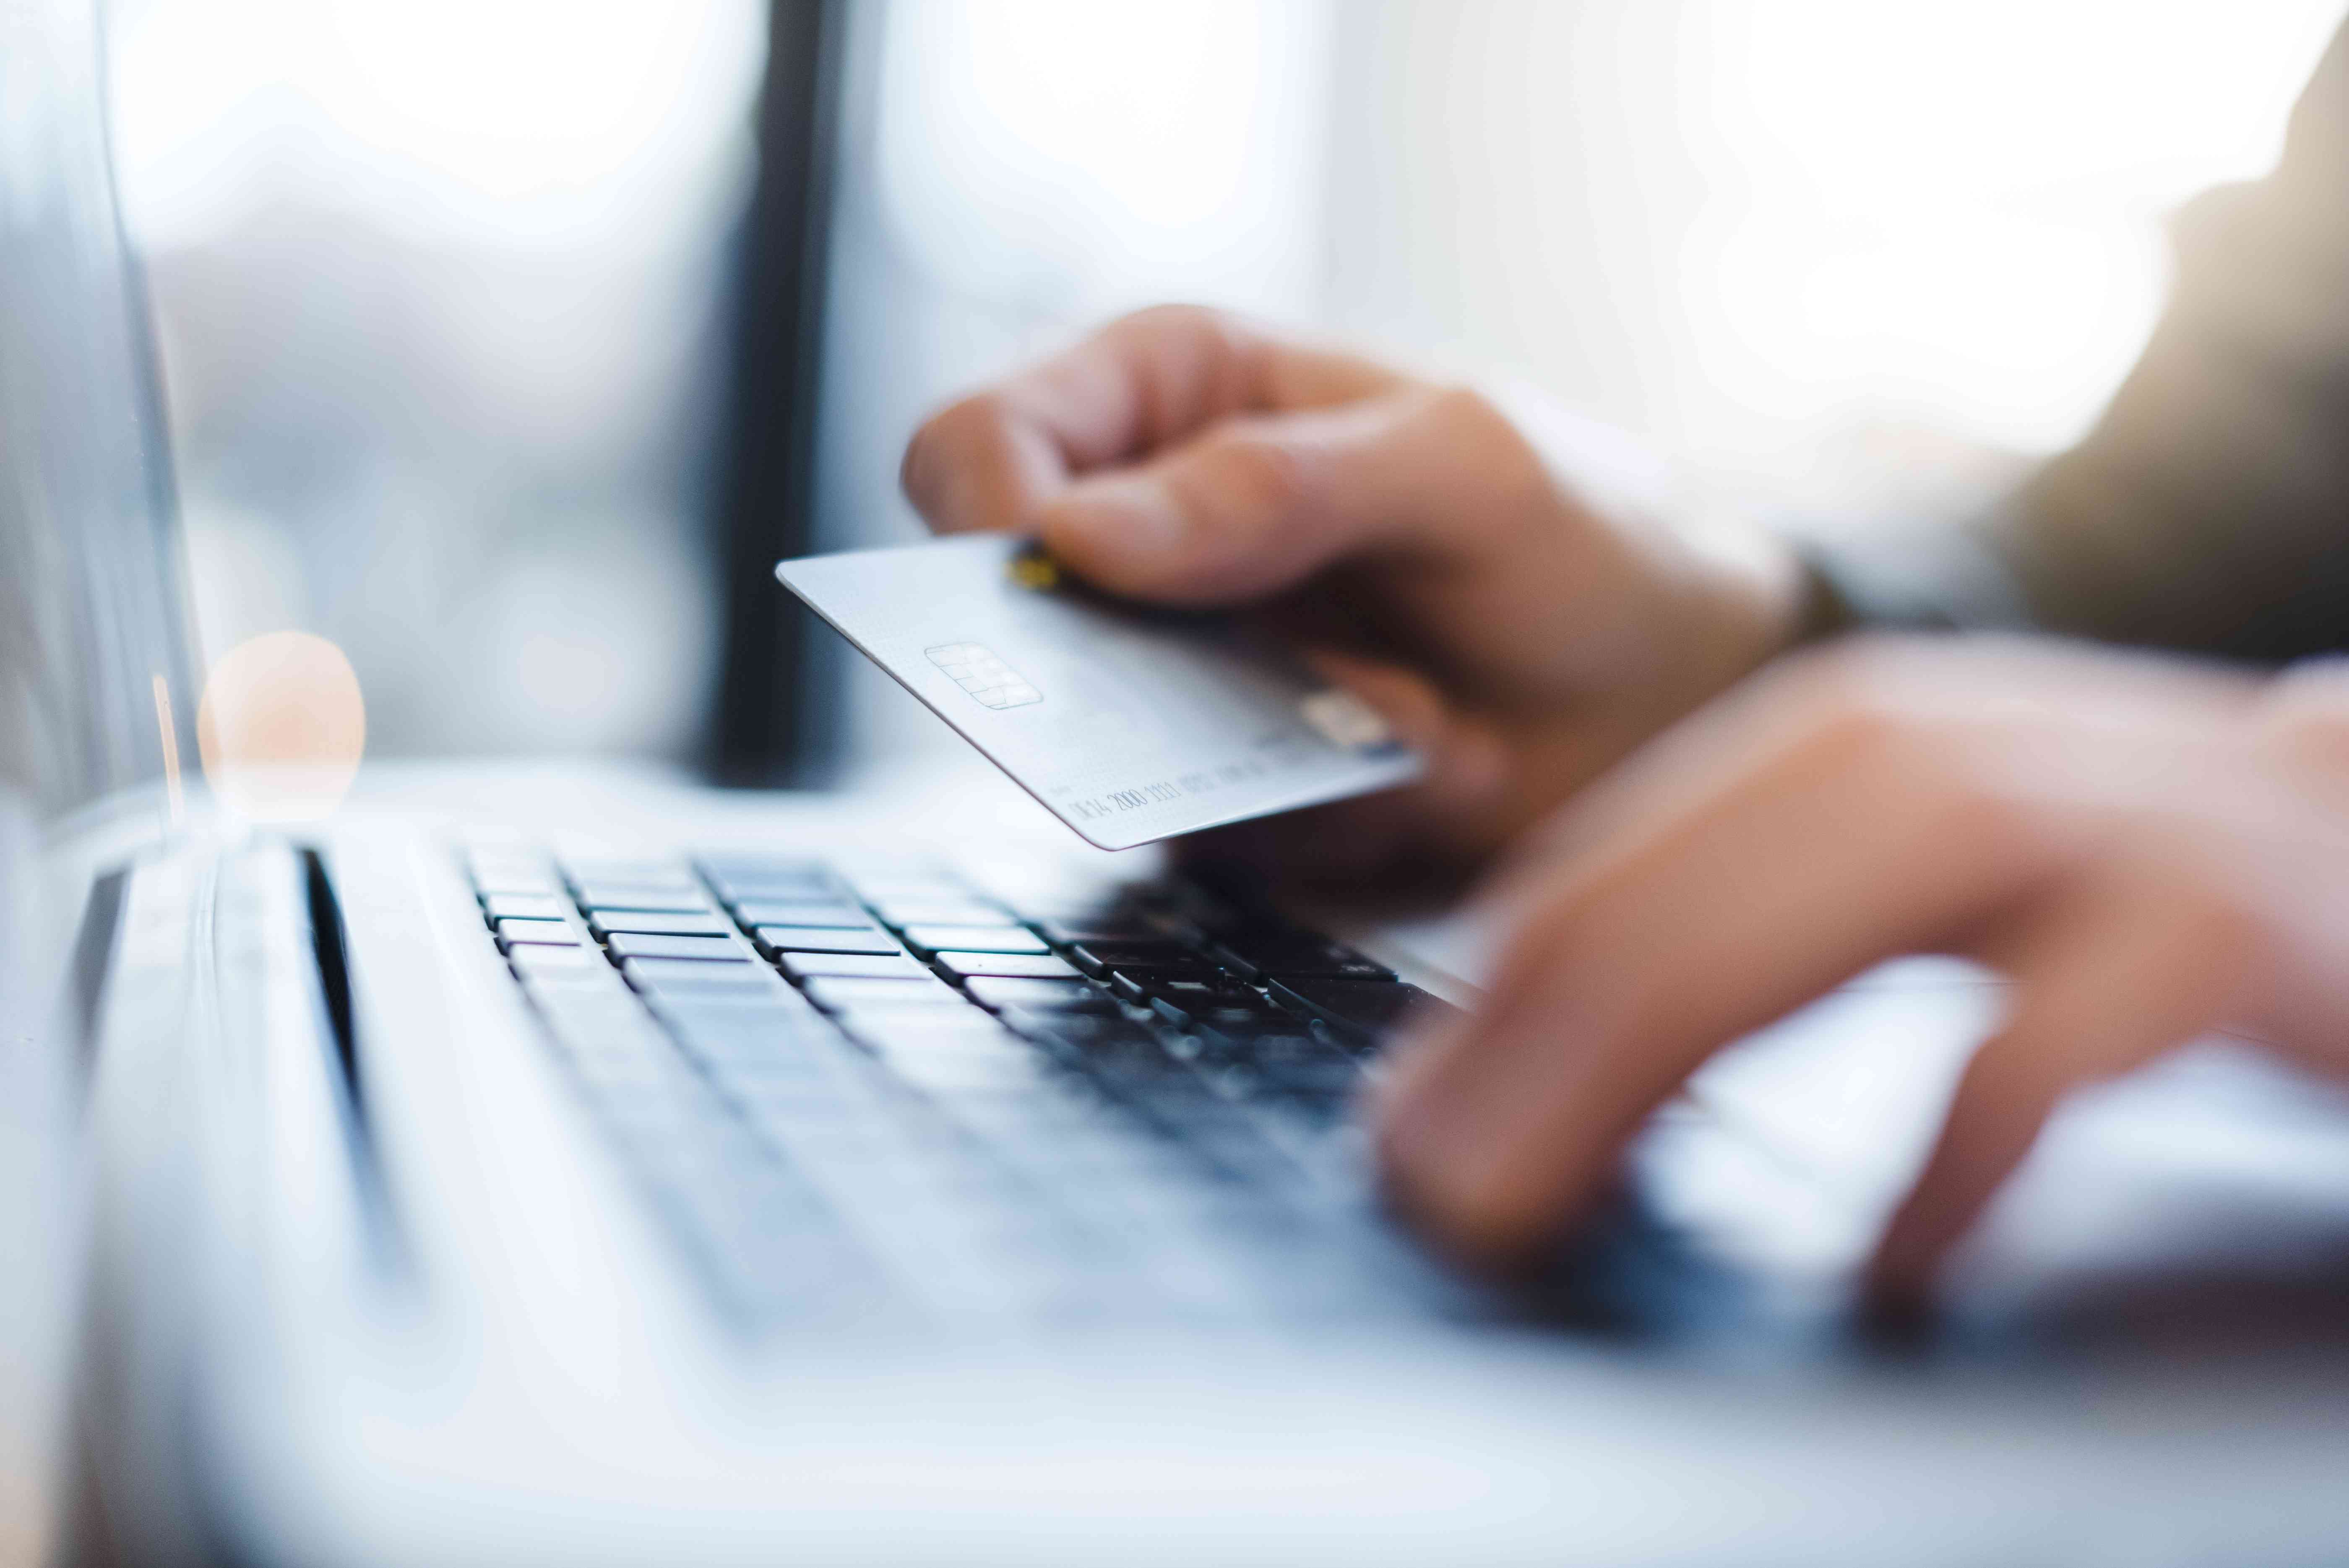 Man using credit card to setup a auto billing subscription service